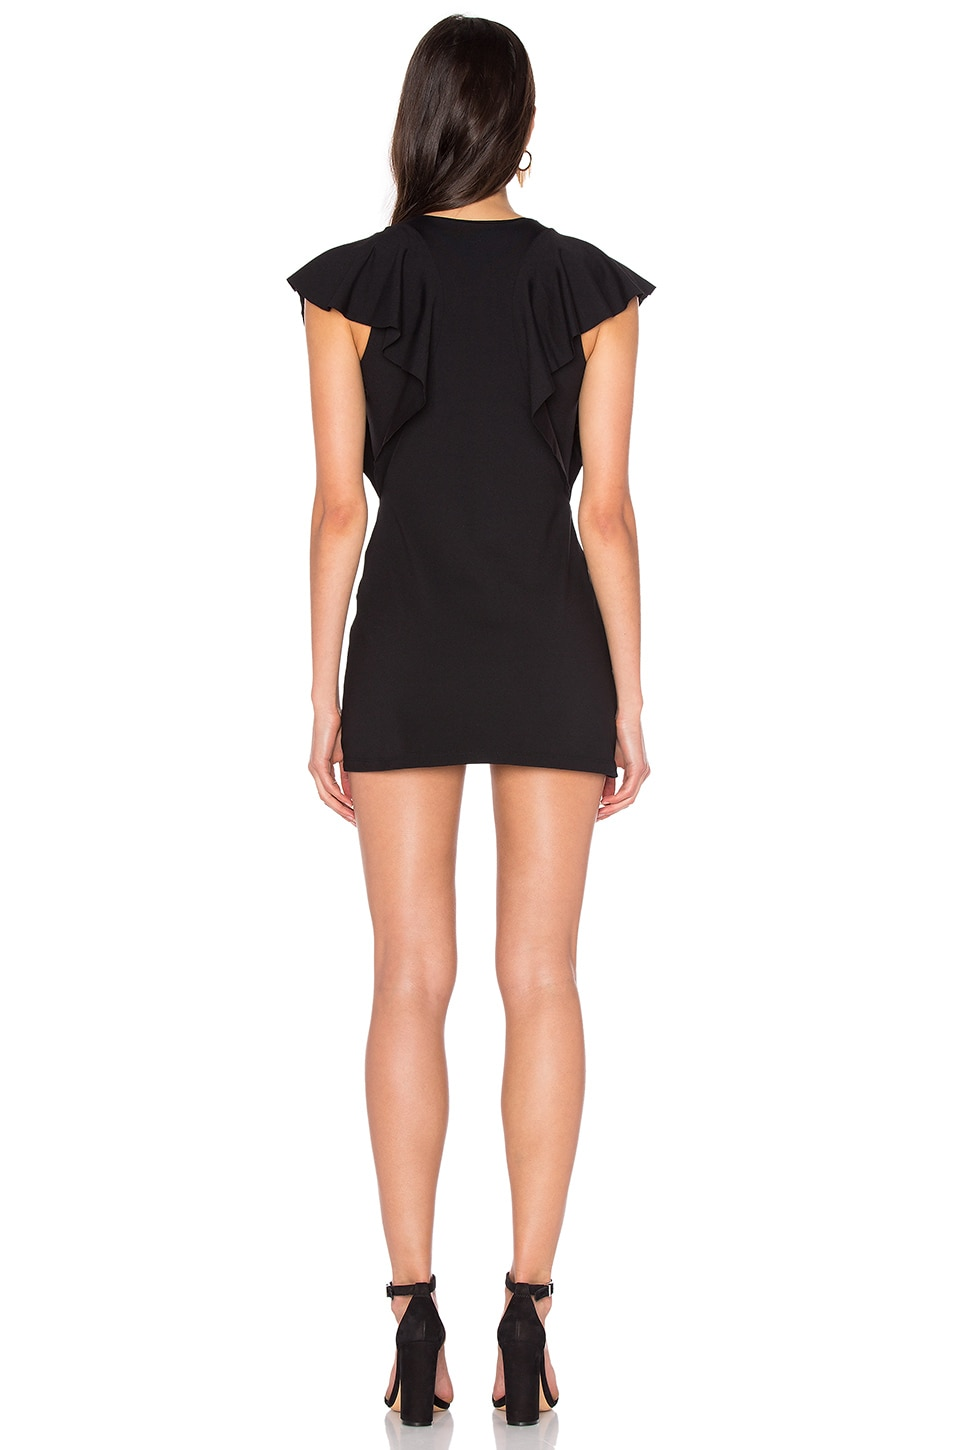 "Susana Monaco Lana 16"" Dress in Black"